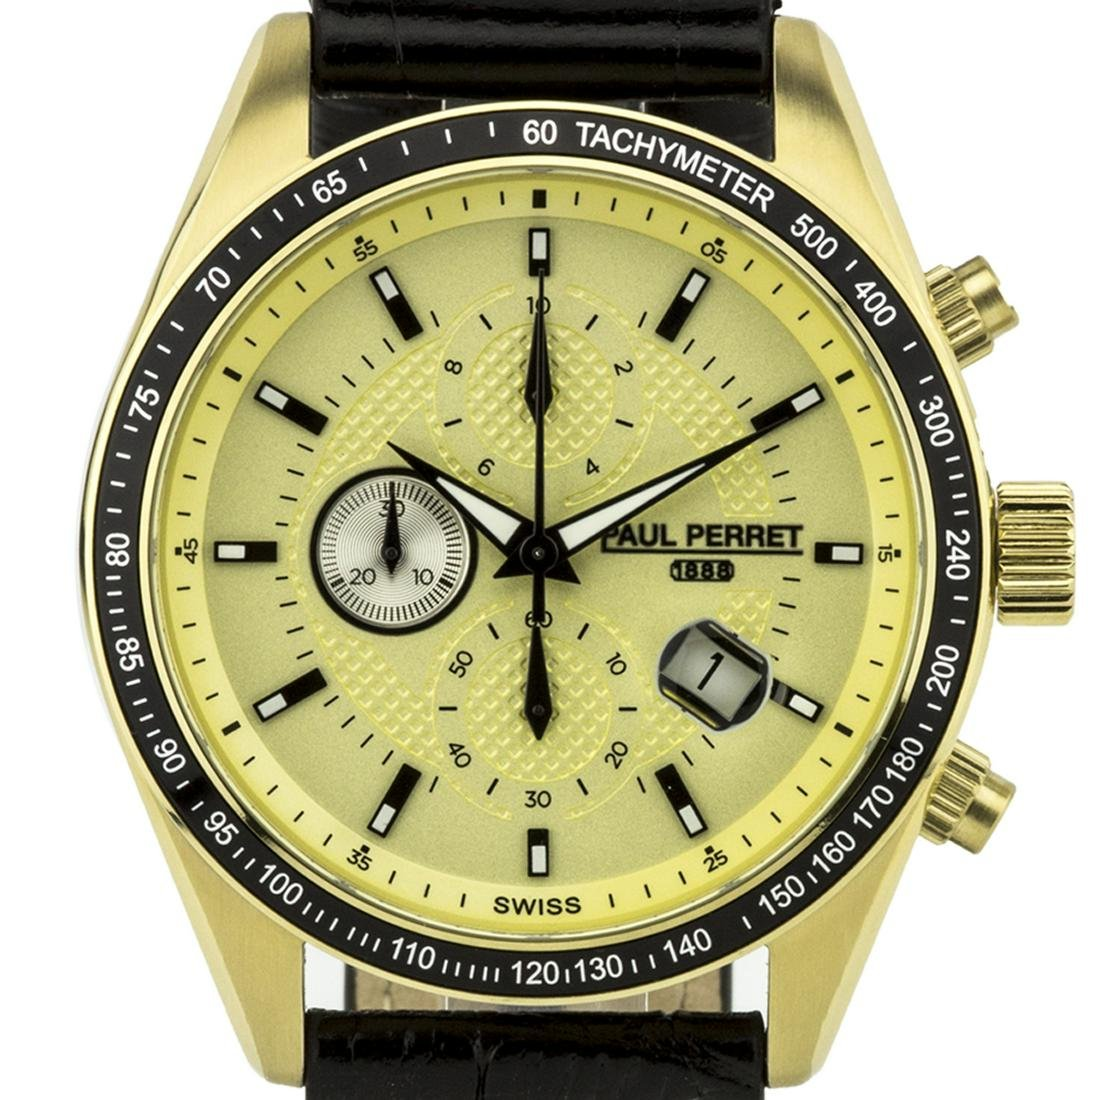 Paul Perret Esperto Men's Swiss Chronograph Watch